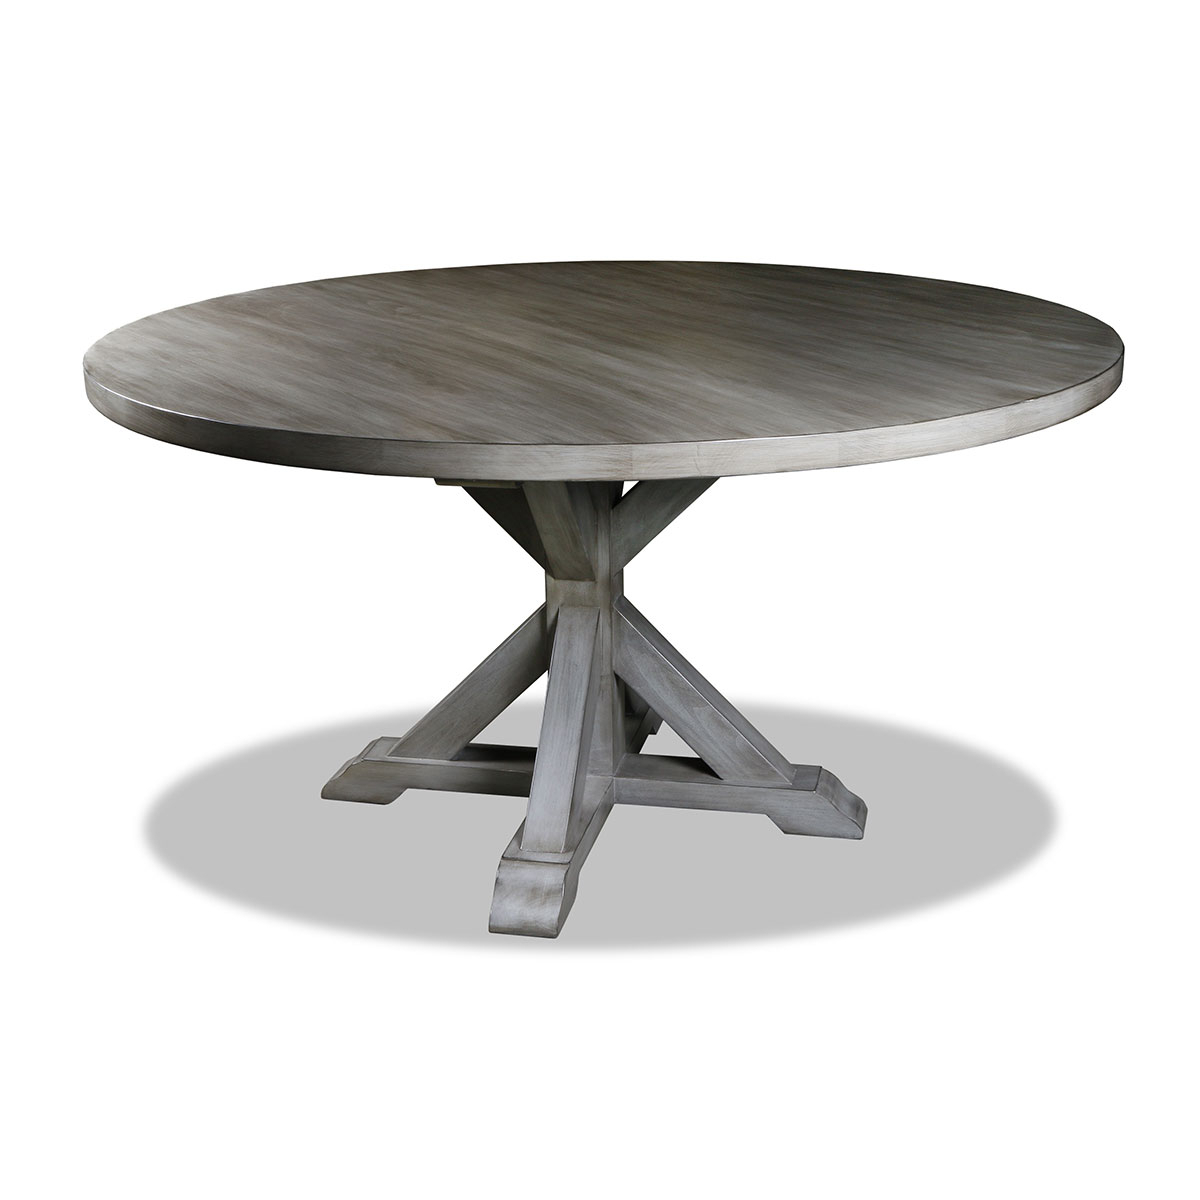 Solid Wood Circular Dining Tables White Intended For Well Liked Treasure Reclaimed Wood Round Dining Table (View 15 of 25)